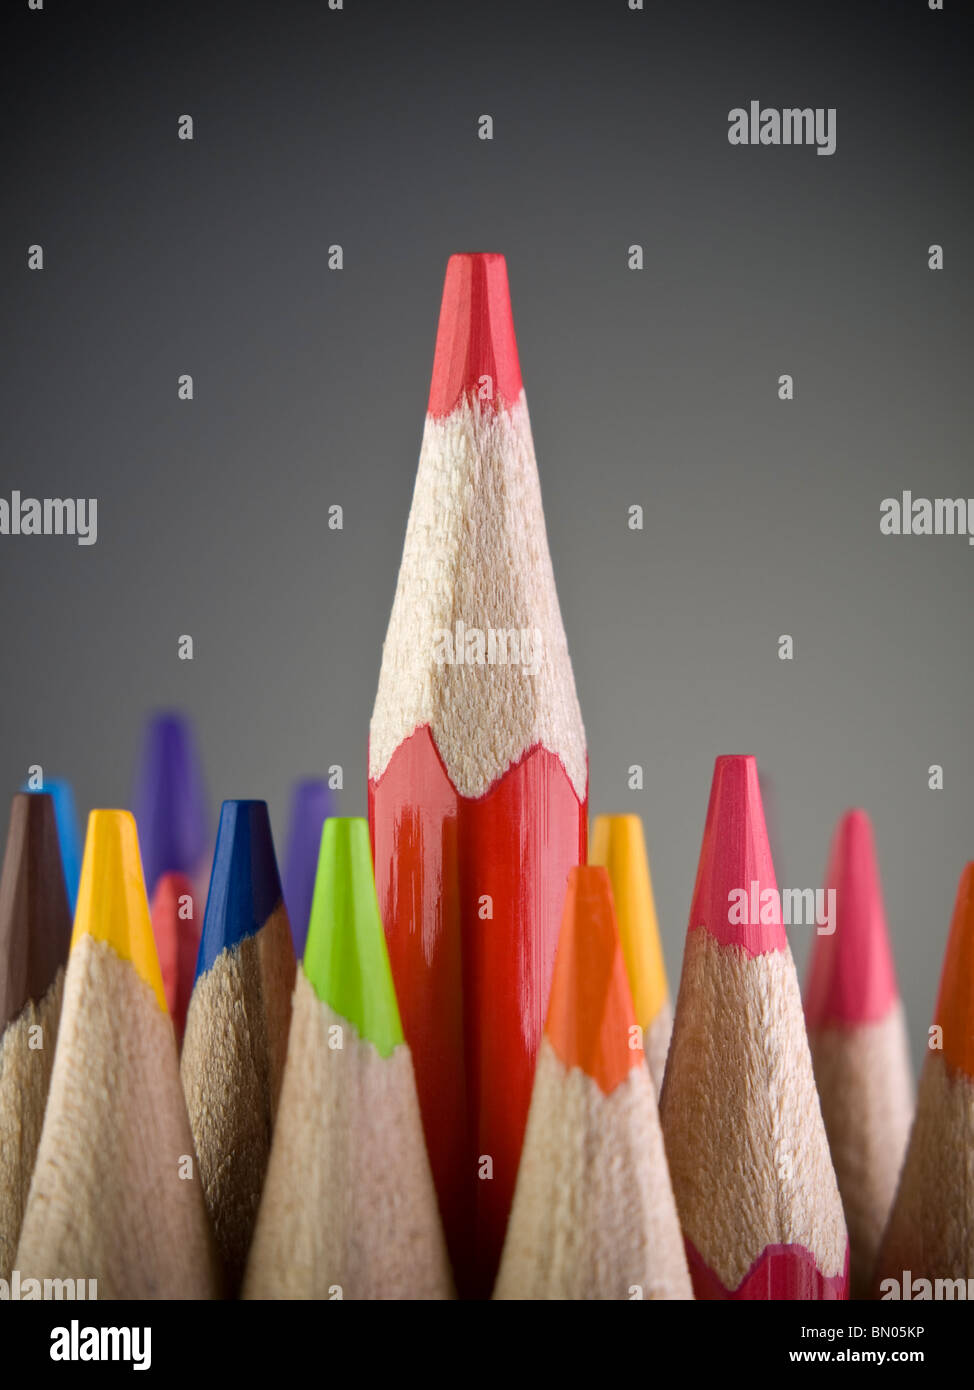 Red pencil coming out among many colored pencils. - Stock Image